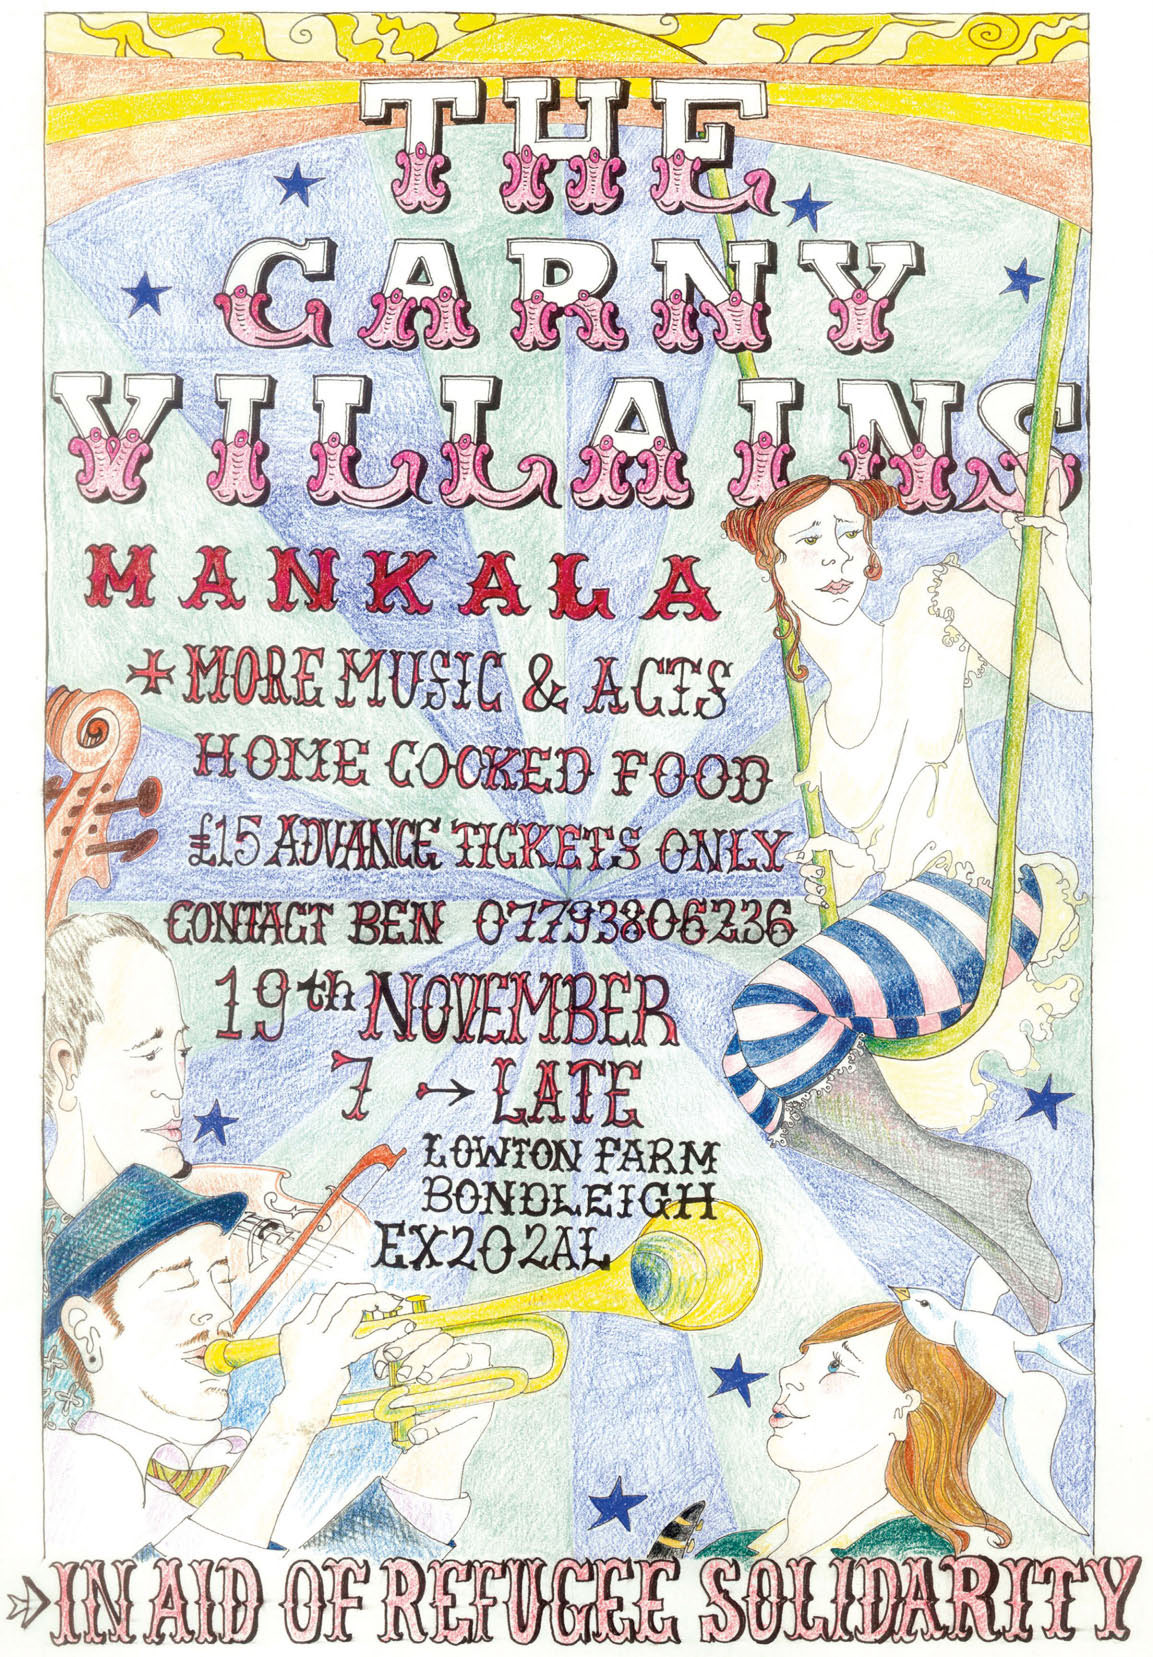 carny-villains-event-1